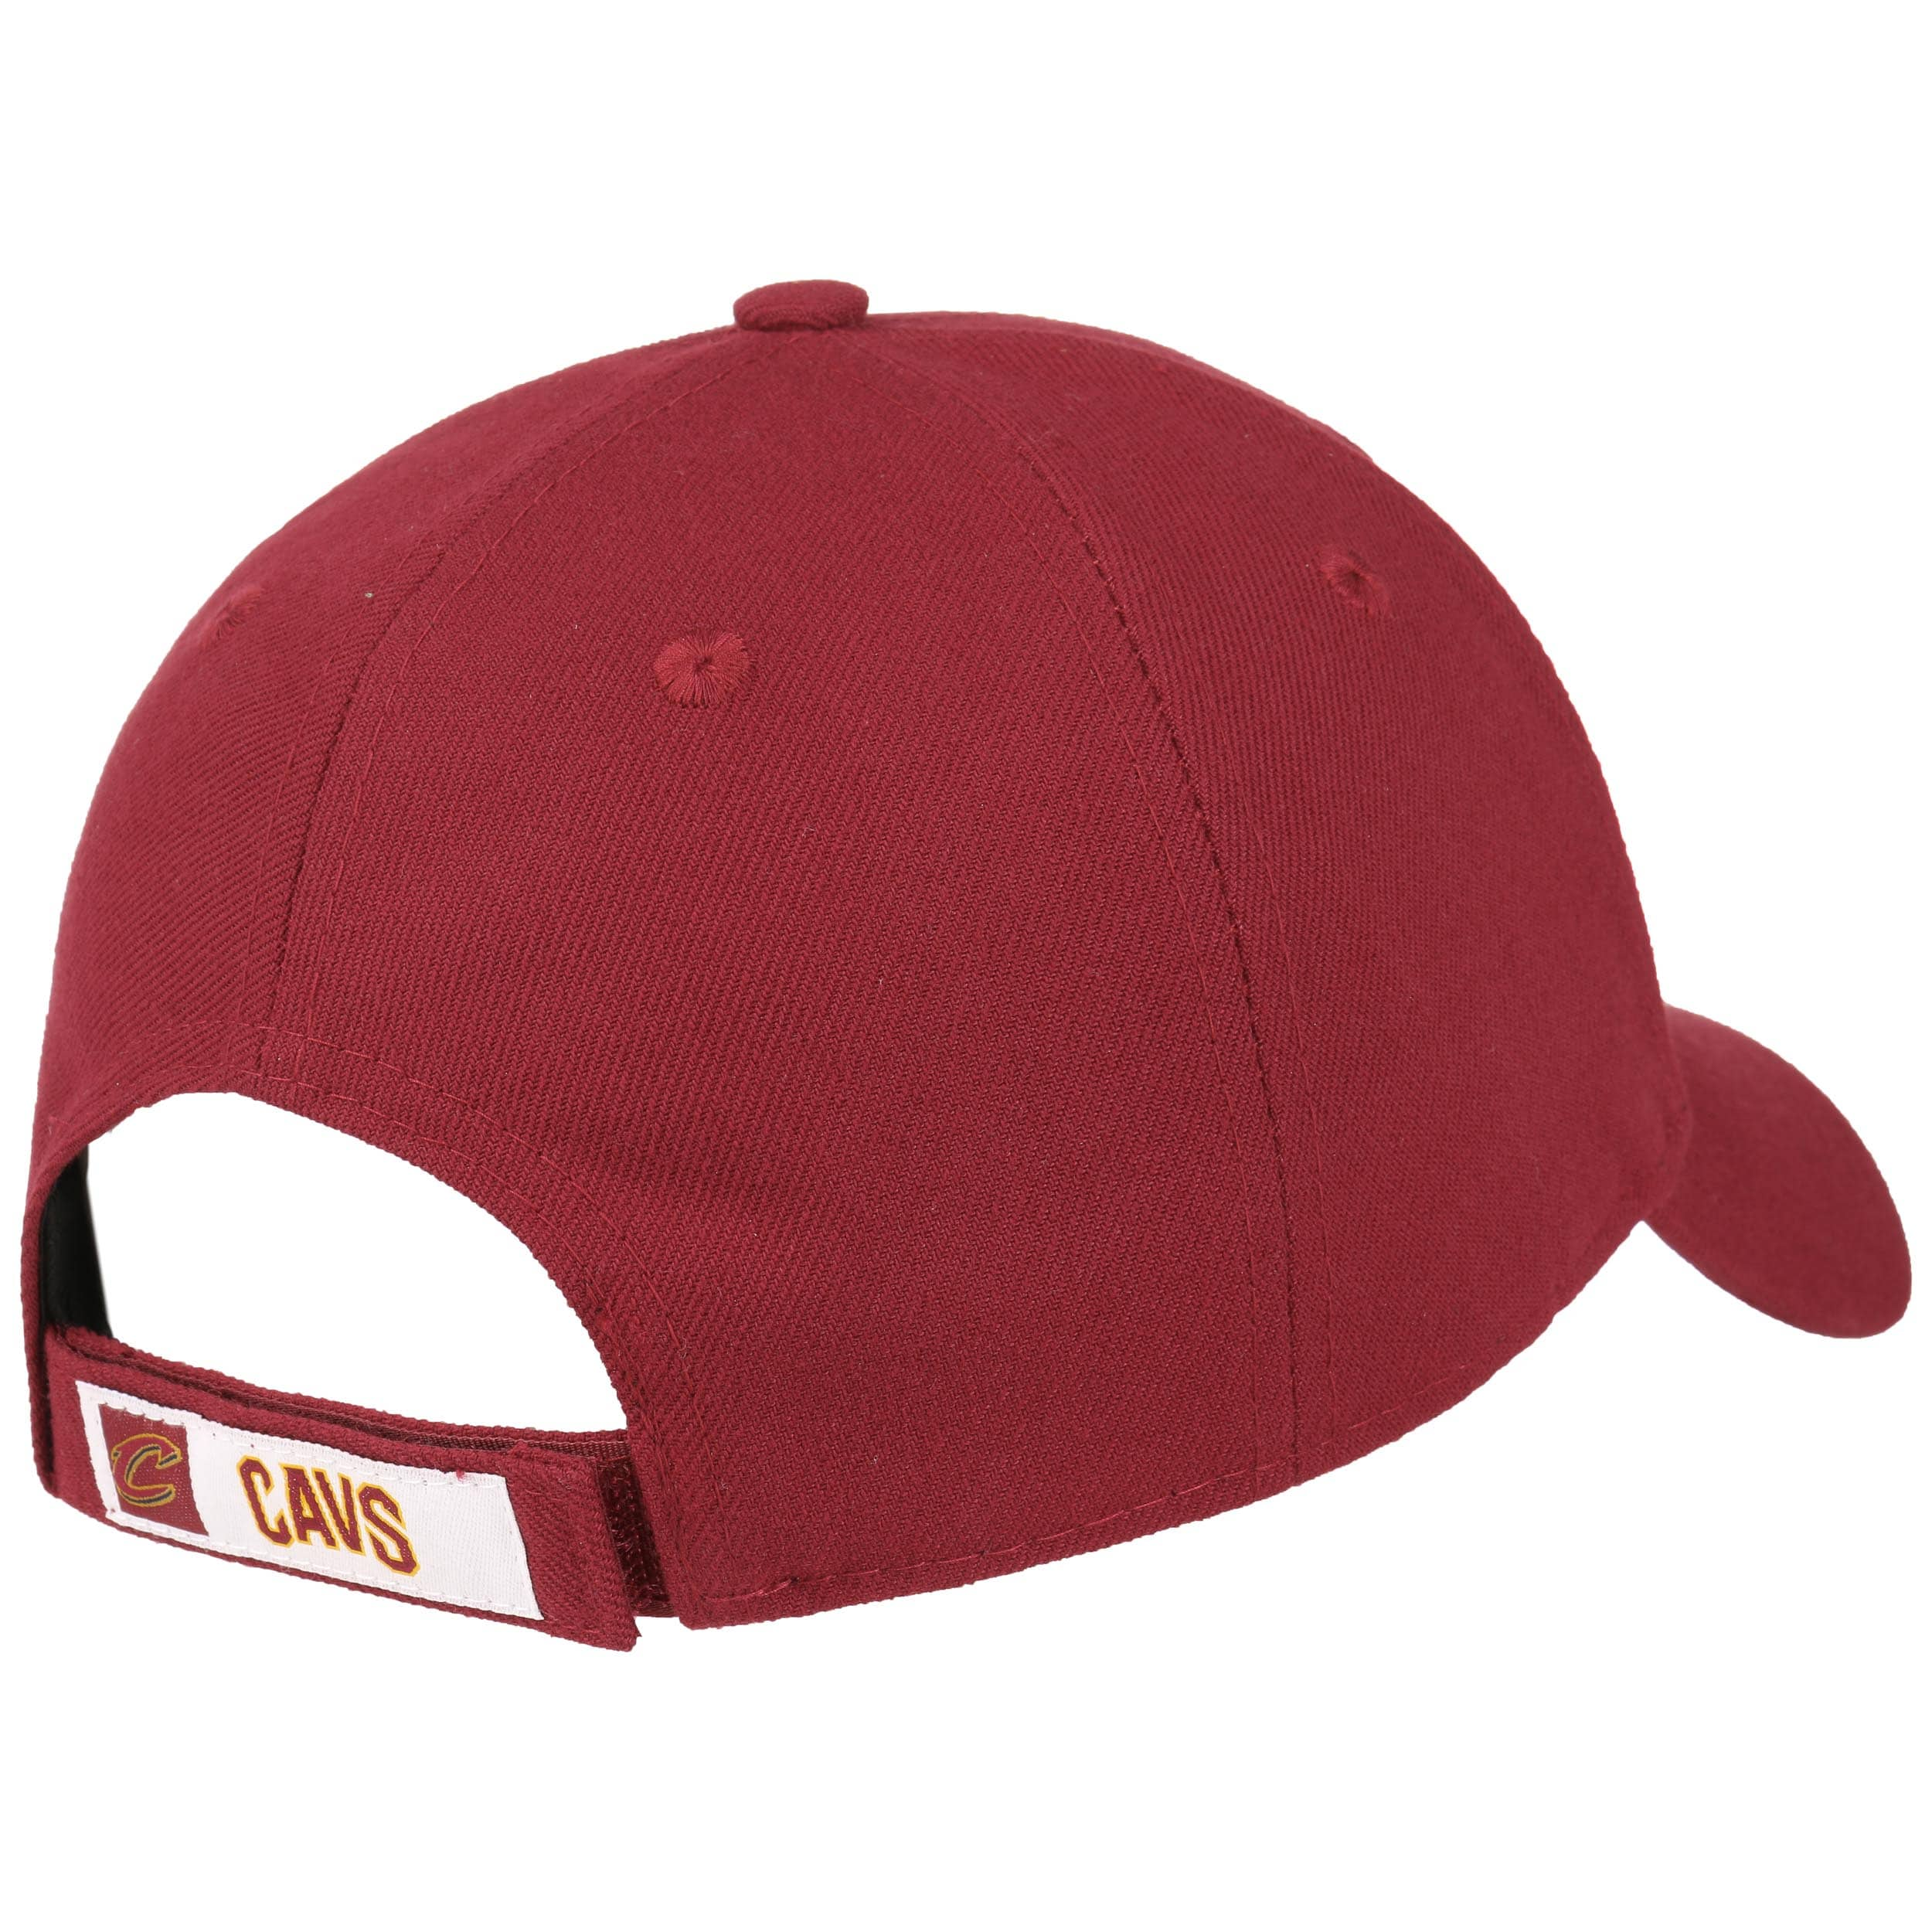 ... 9Forty The League Cavs Cap by New Era - bordeaux 3 ... 9257111149c